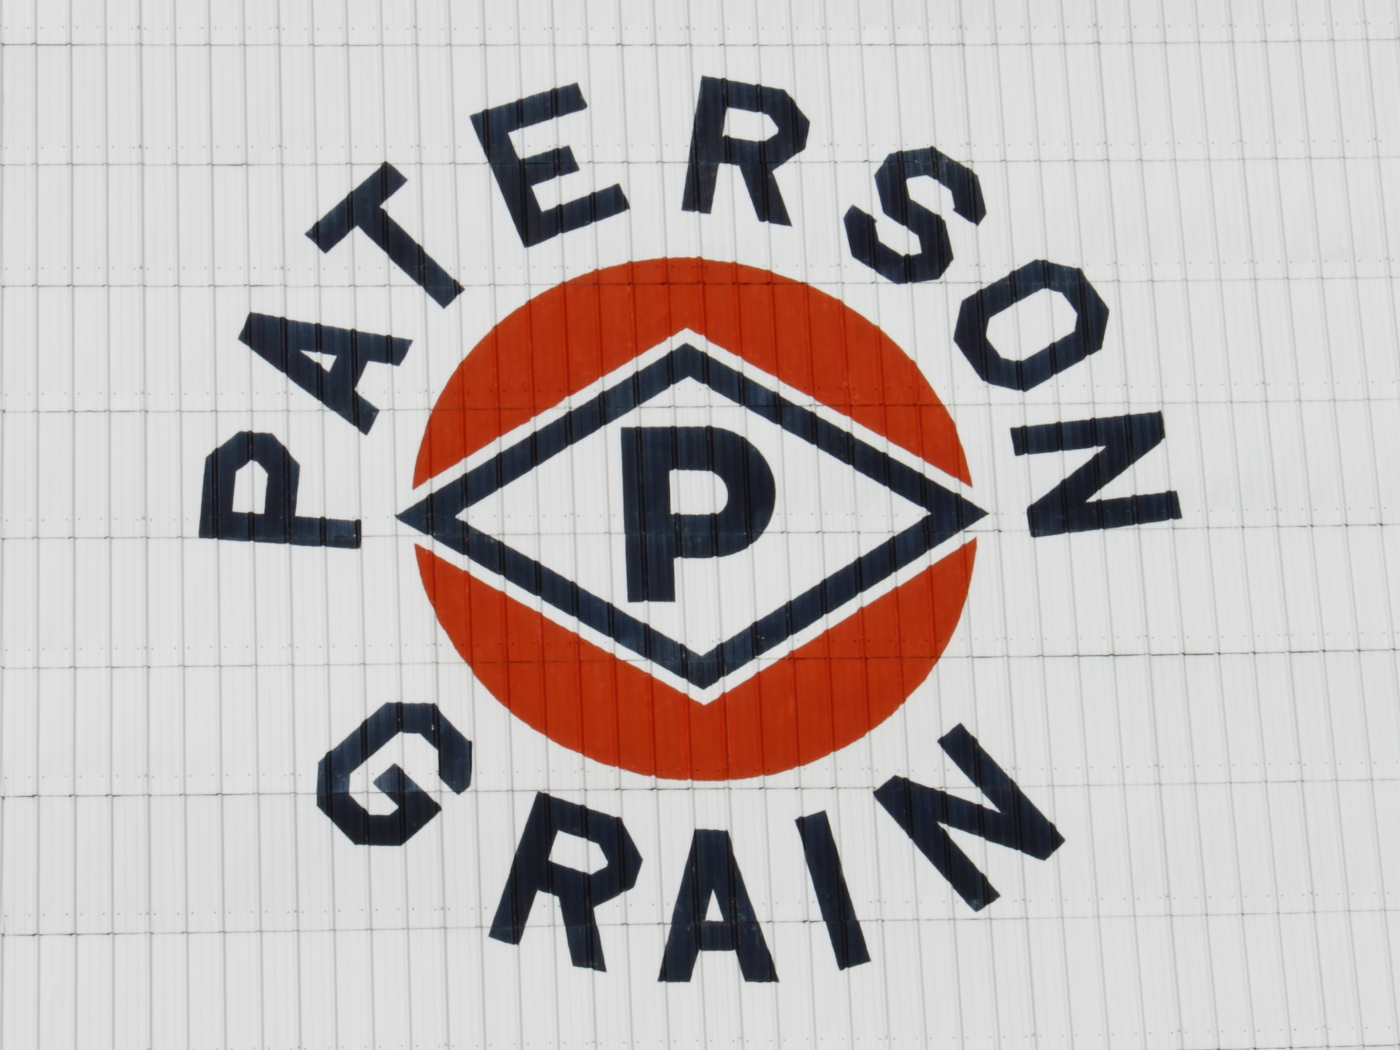 Paterson Grain sign in Grenfell, SK 2012/08/28